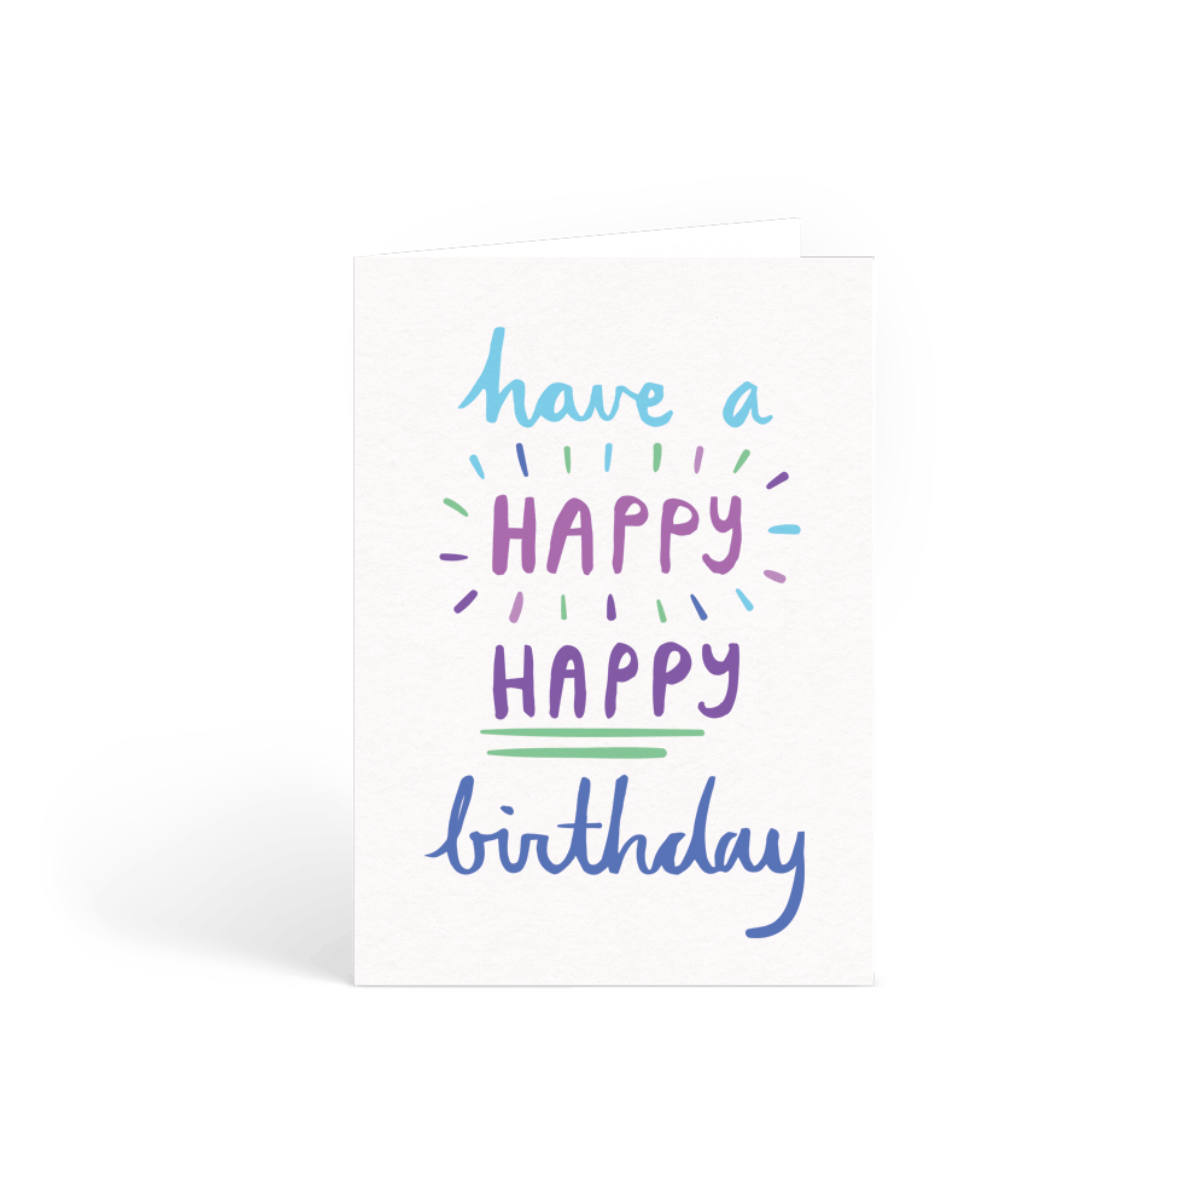 Https%3a%2f%2fwww.papier.com%2fproduct image%2f423%2f2%2fhappy happy birthday 115 front 1453909266.png?ixlib=rb 1.1